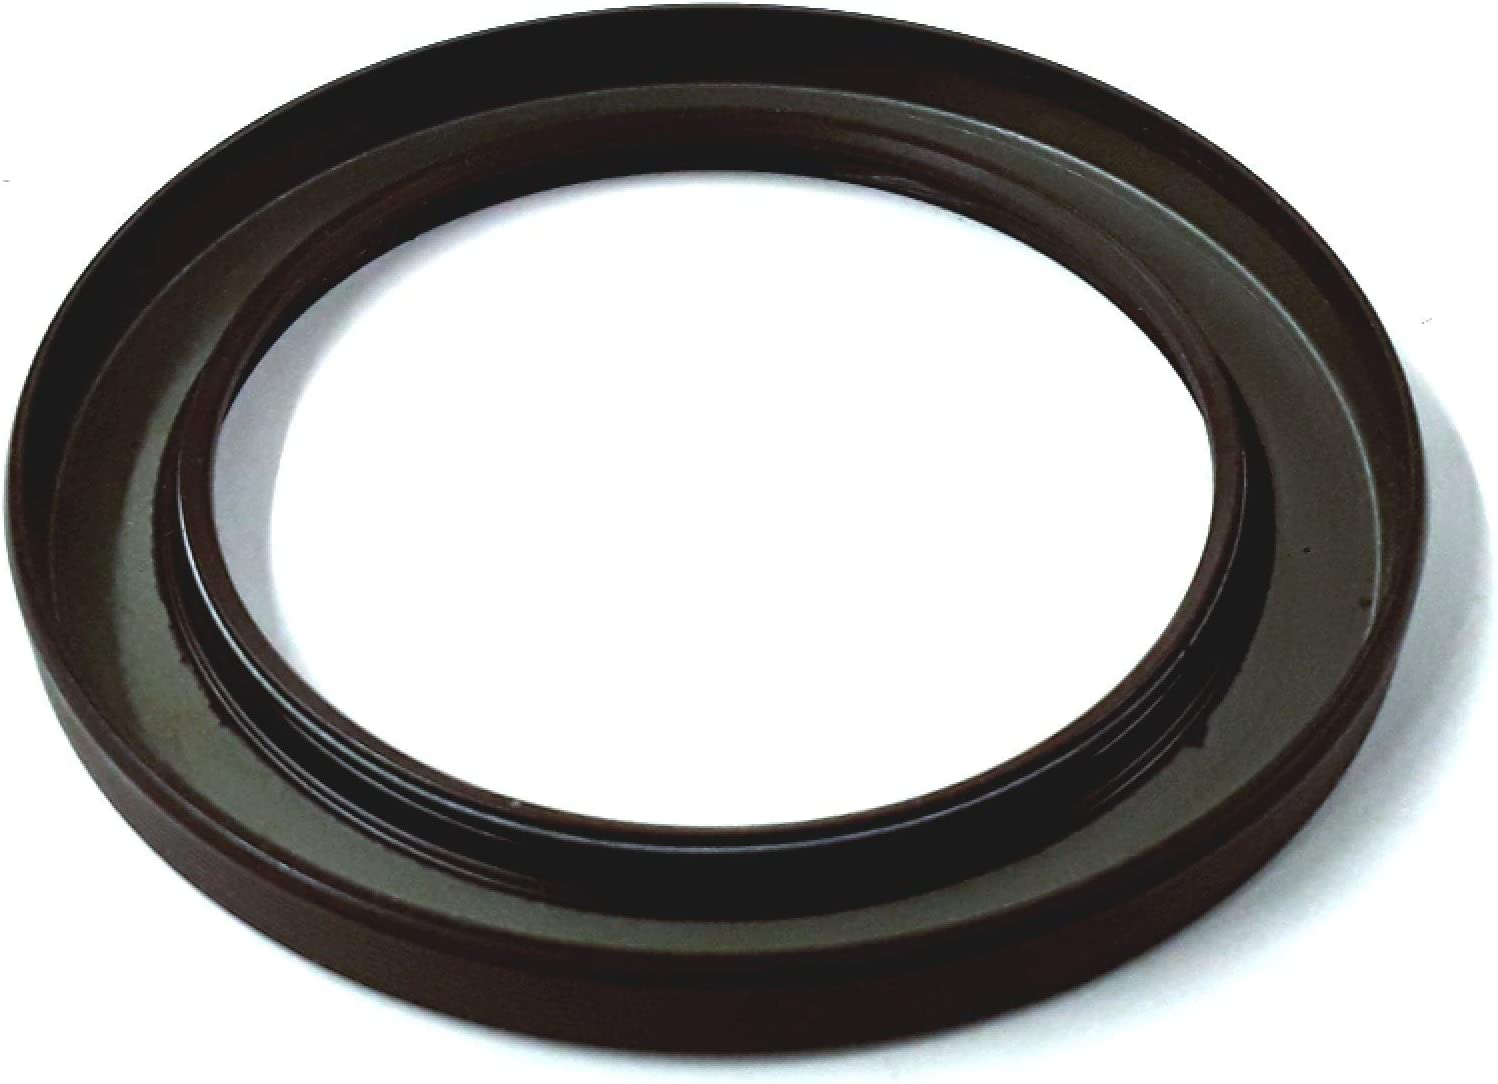 Genuine Shaft oil seal left AUDI VW A4 Wagon Cabrio We OFFer at cheap prices Cheap sale 0 quattro S4